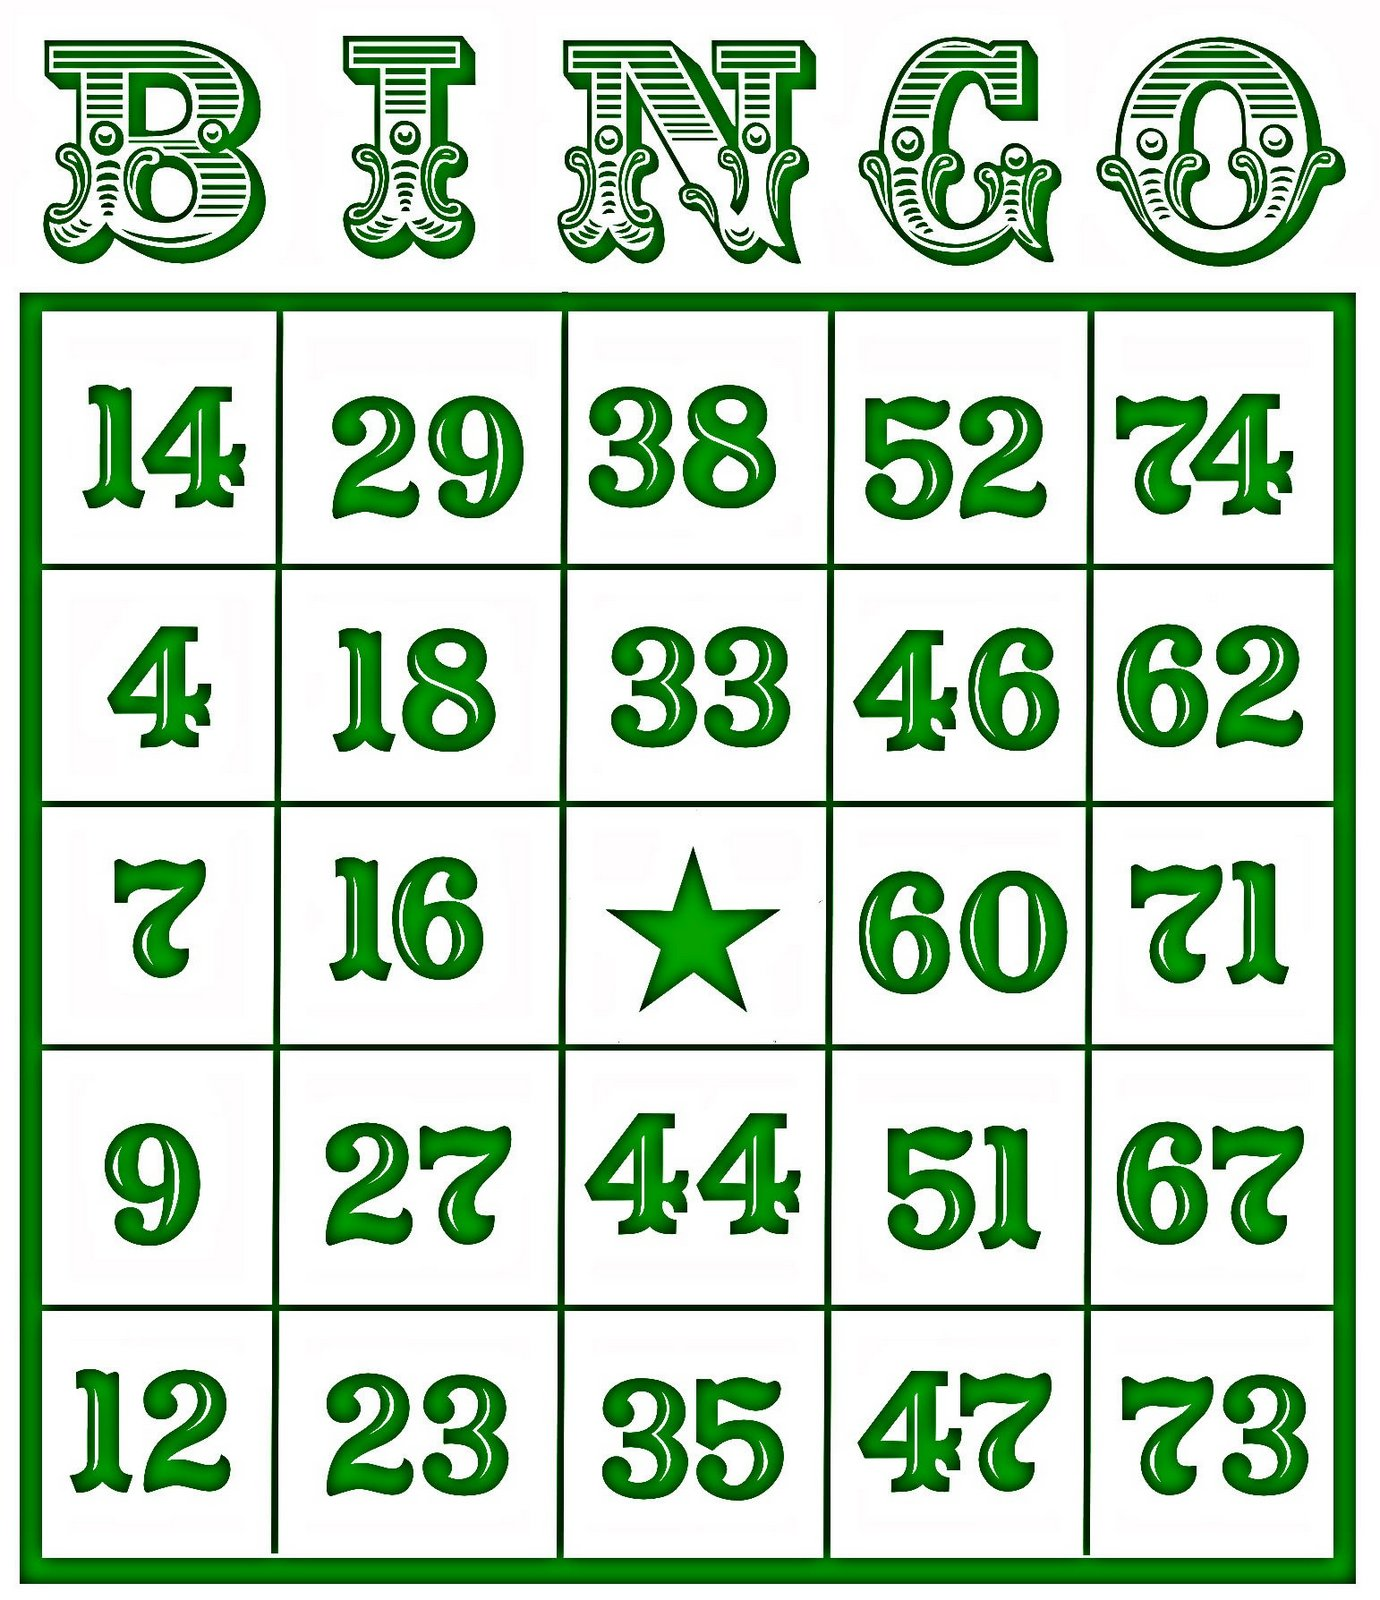 Bingo Card Printables To Share on Number Recognition Bingo